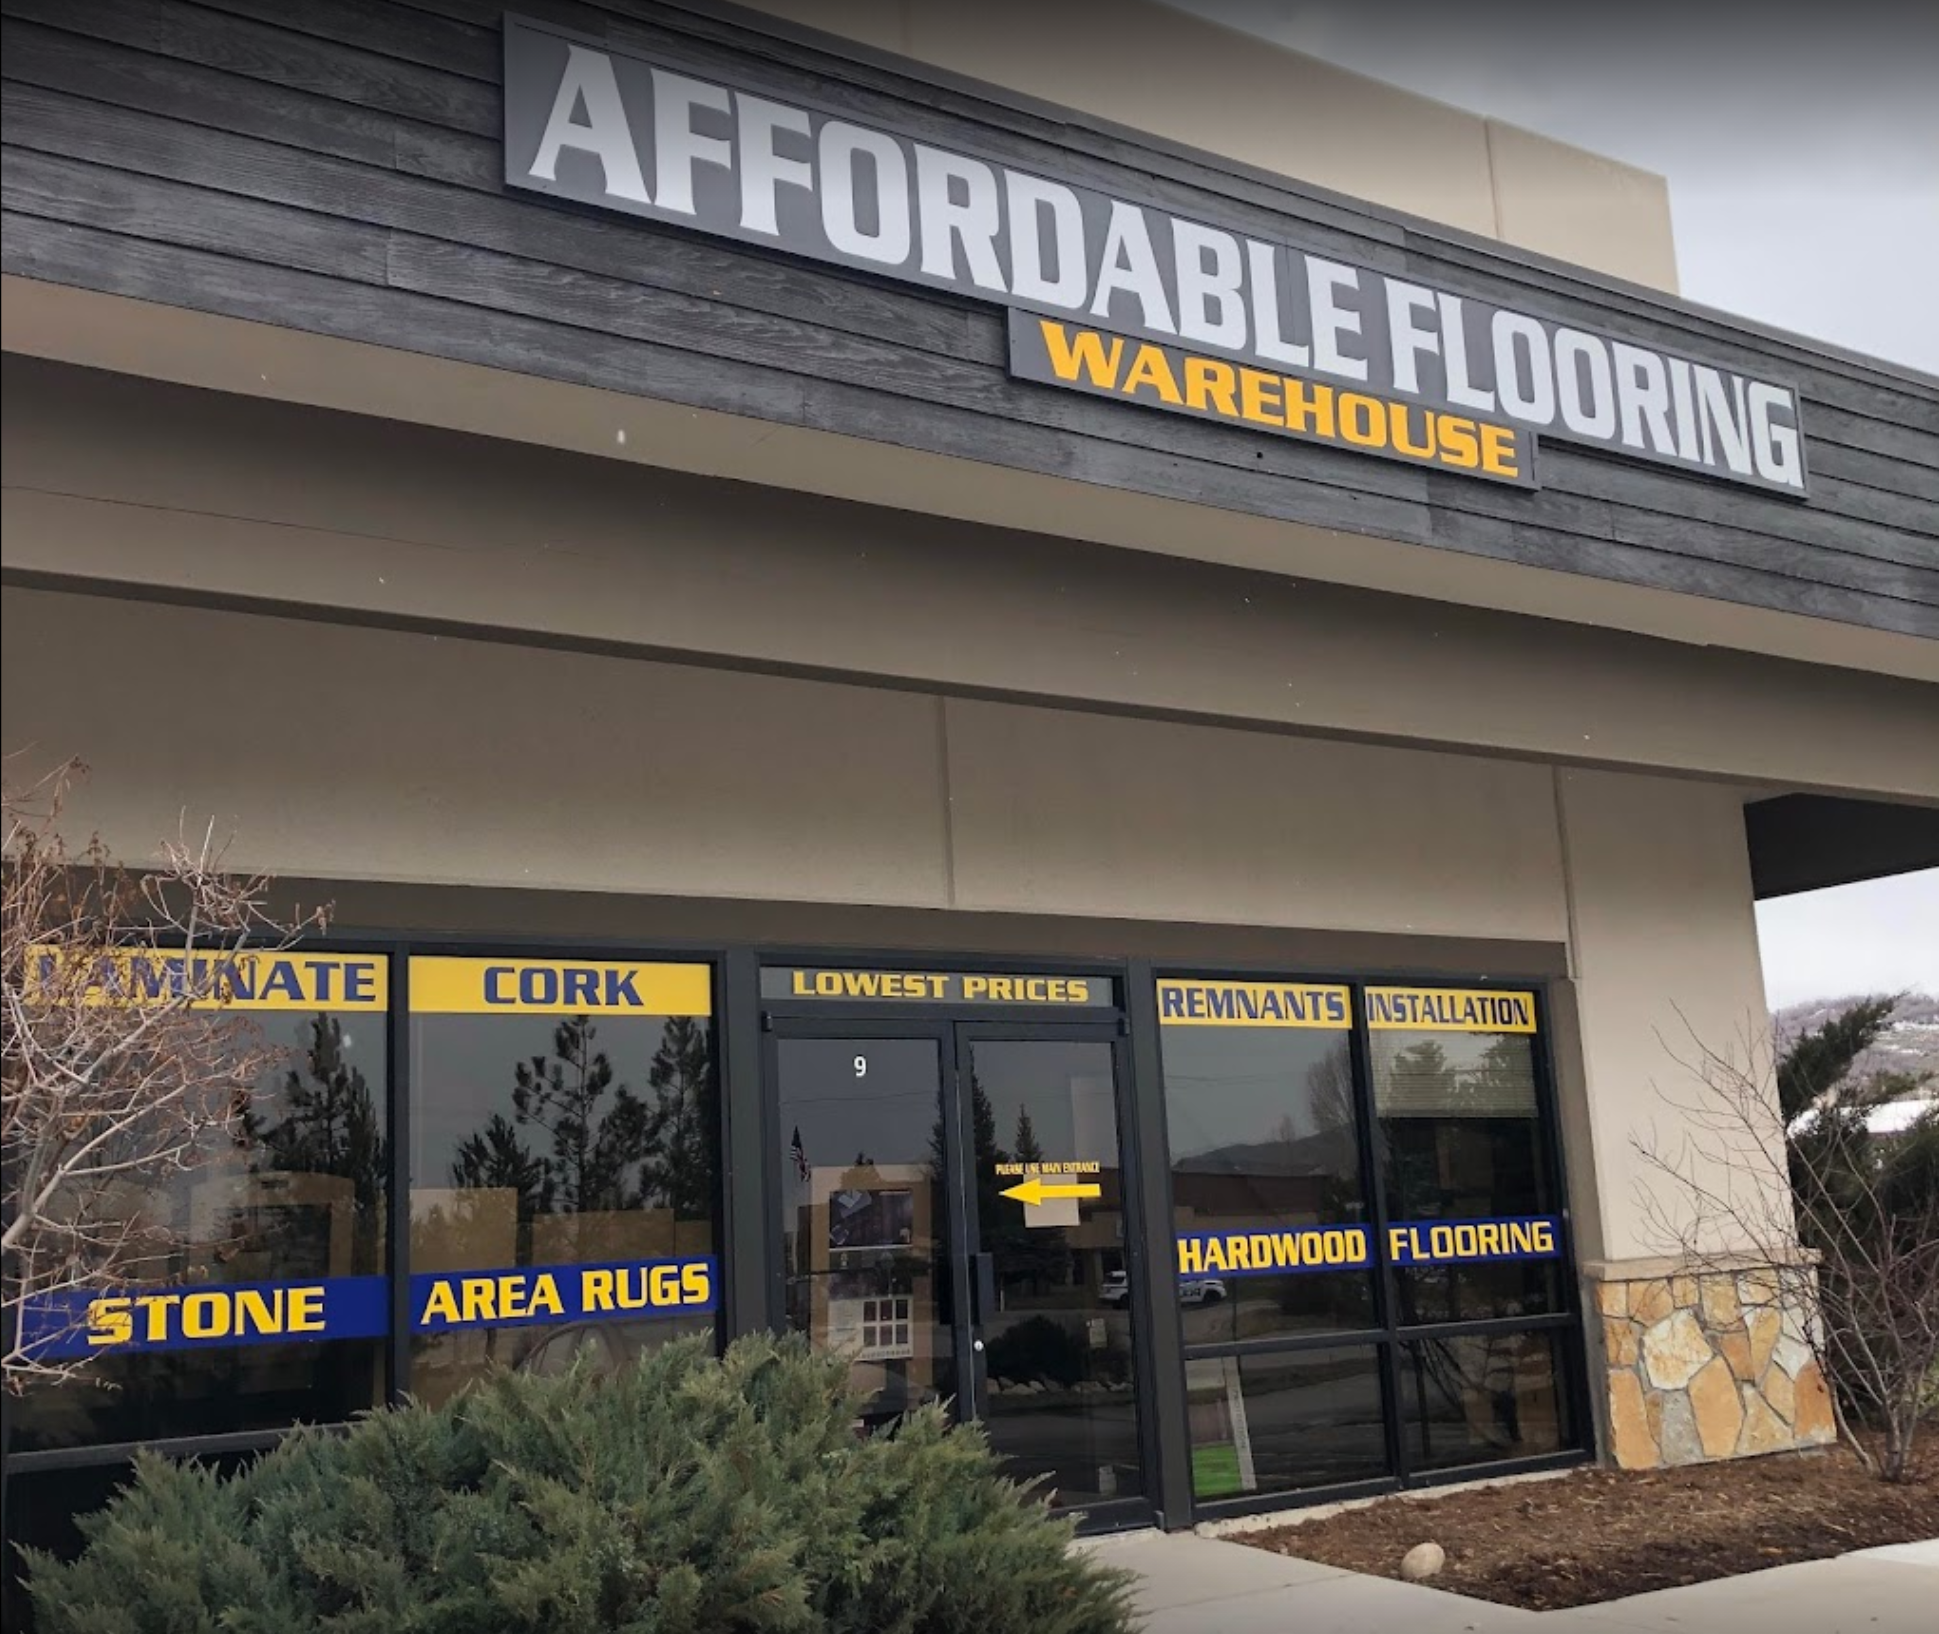 Affordable Flooring Warehouse of Steamboat Springs